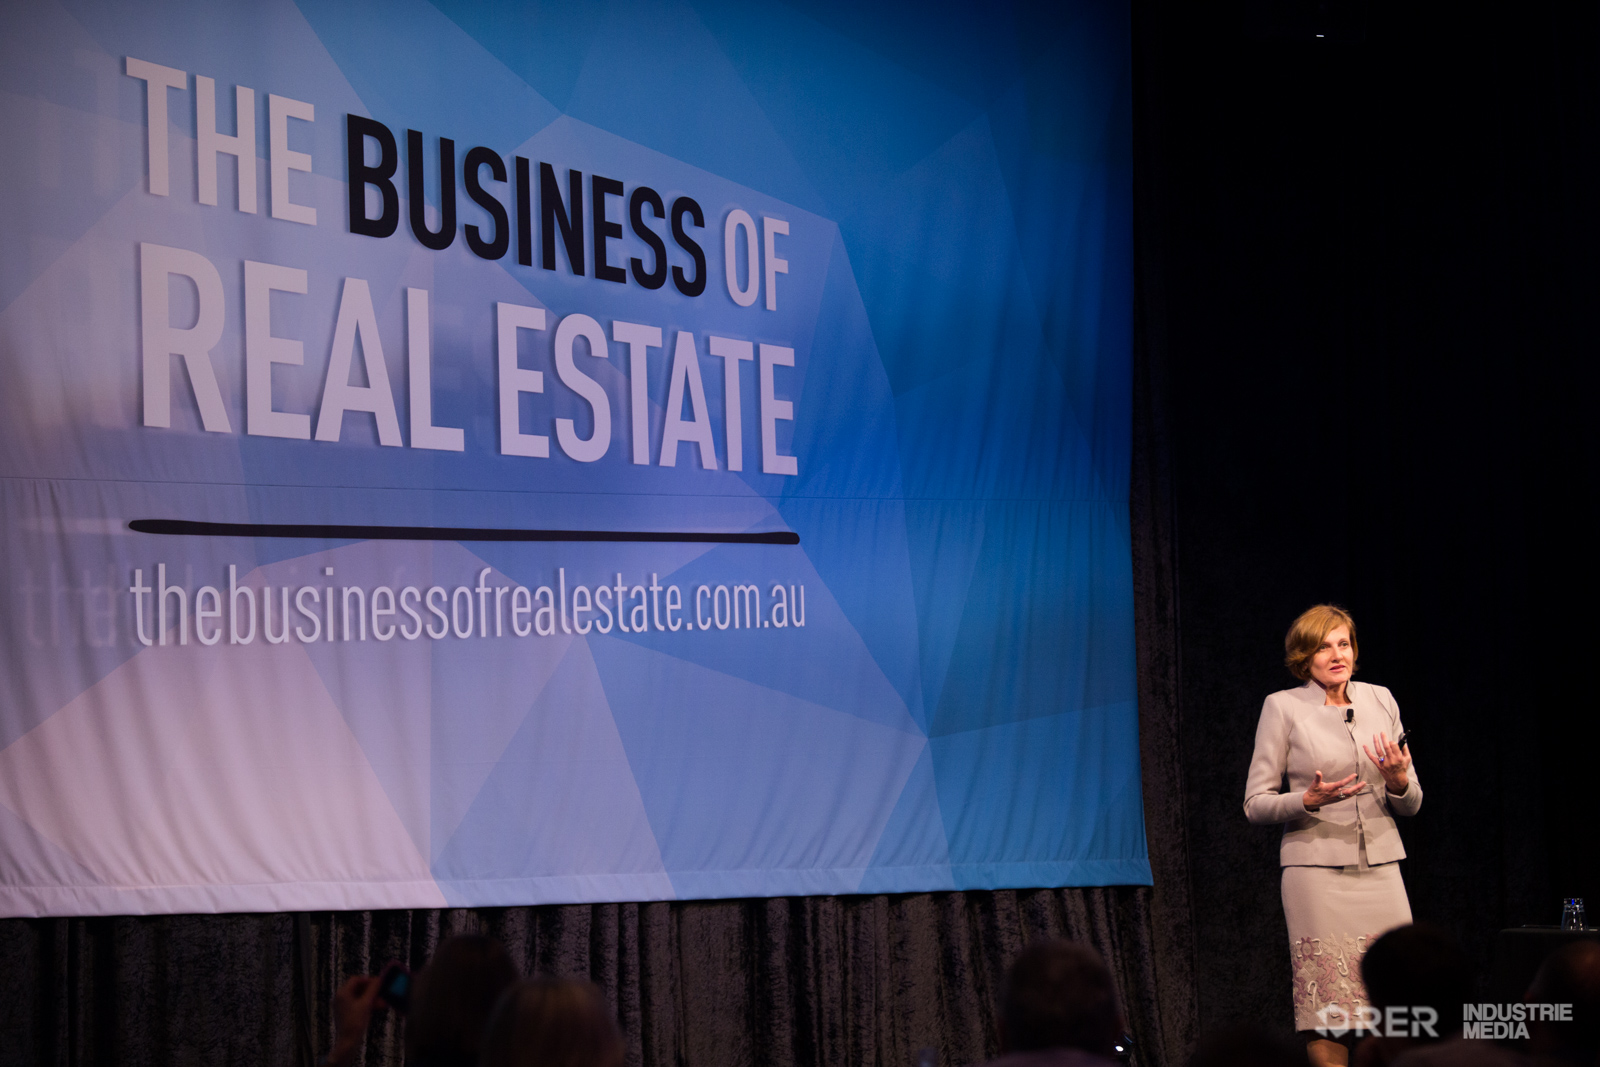 http://www.thebusinessofrealestate.com.au/wp-content/uploads/2016/09/RER_BUSINESS_OF_REAL_ESTATE_DAY_2-22.jpg